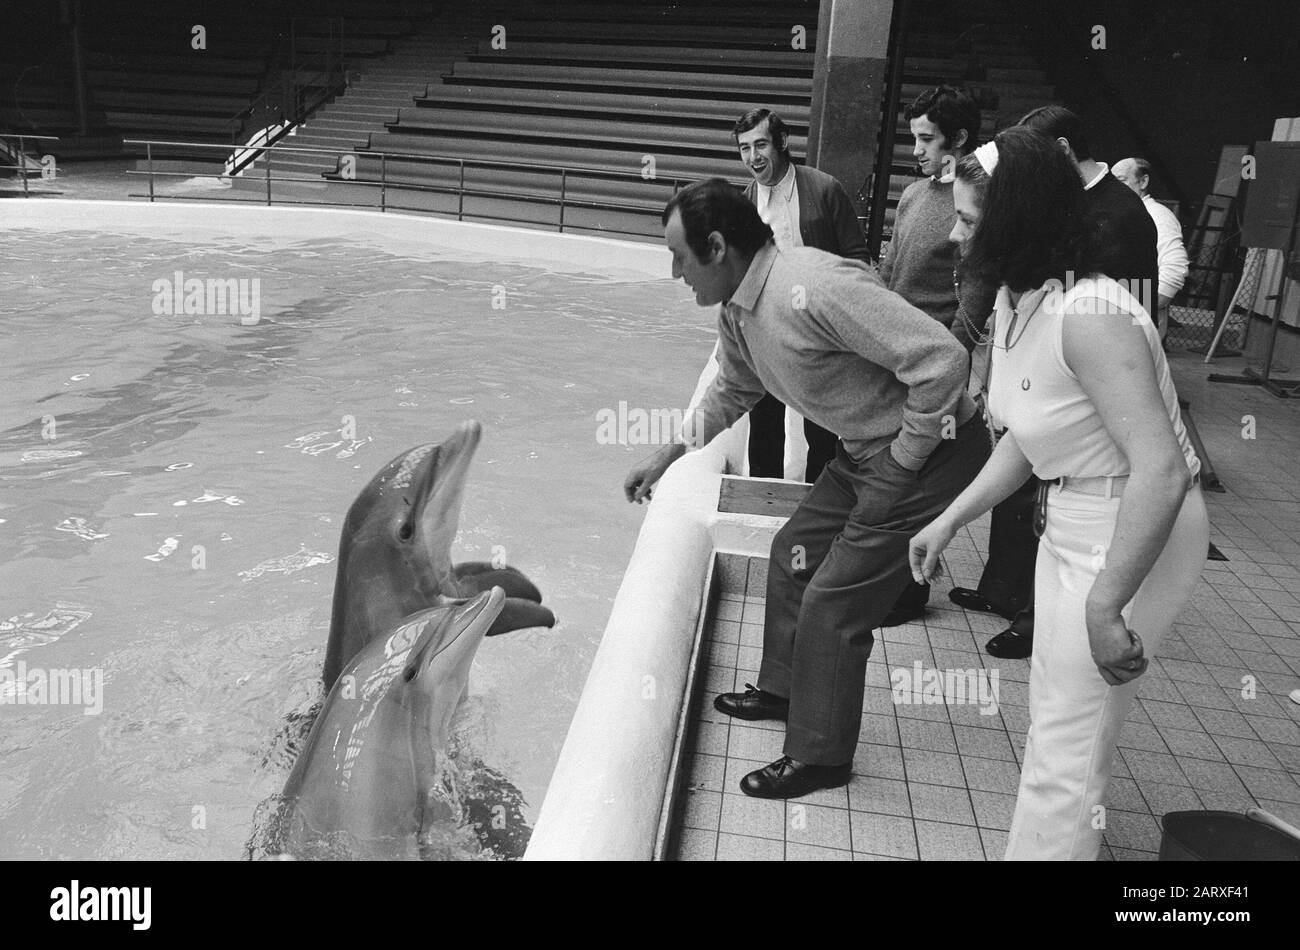 Team of Atletico Madrid at the Dolfinarium in Zandvoort  Trainer Domingo performs dolphins Date: 27 april 1971 Location: Noord-Holland, Zandvoort Keywords: dolphins, sports, trainers, football person name : Domingo, Marcel Stock Photo